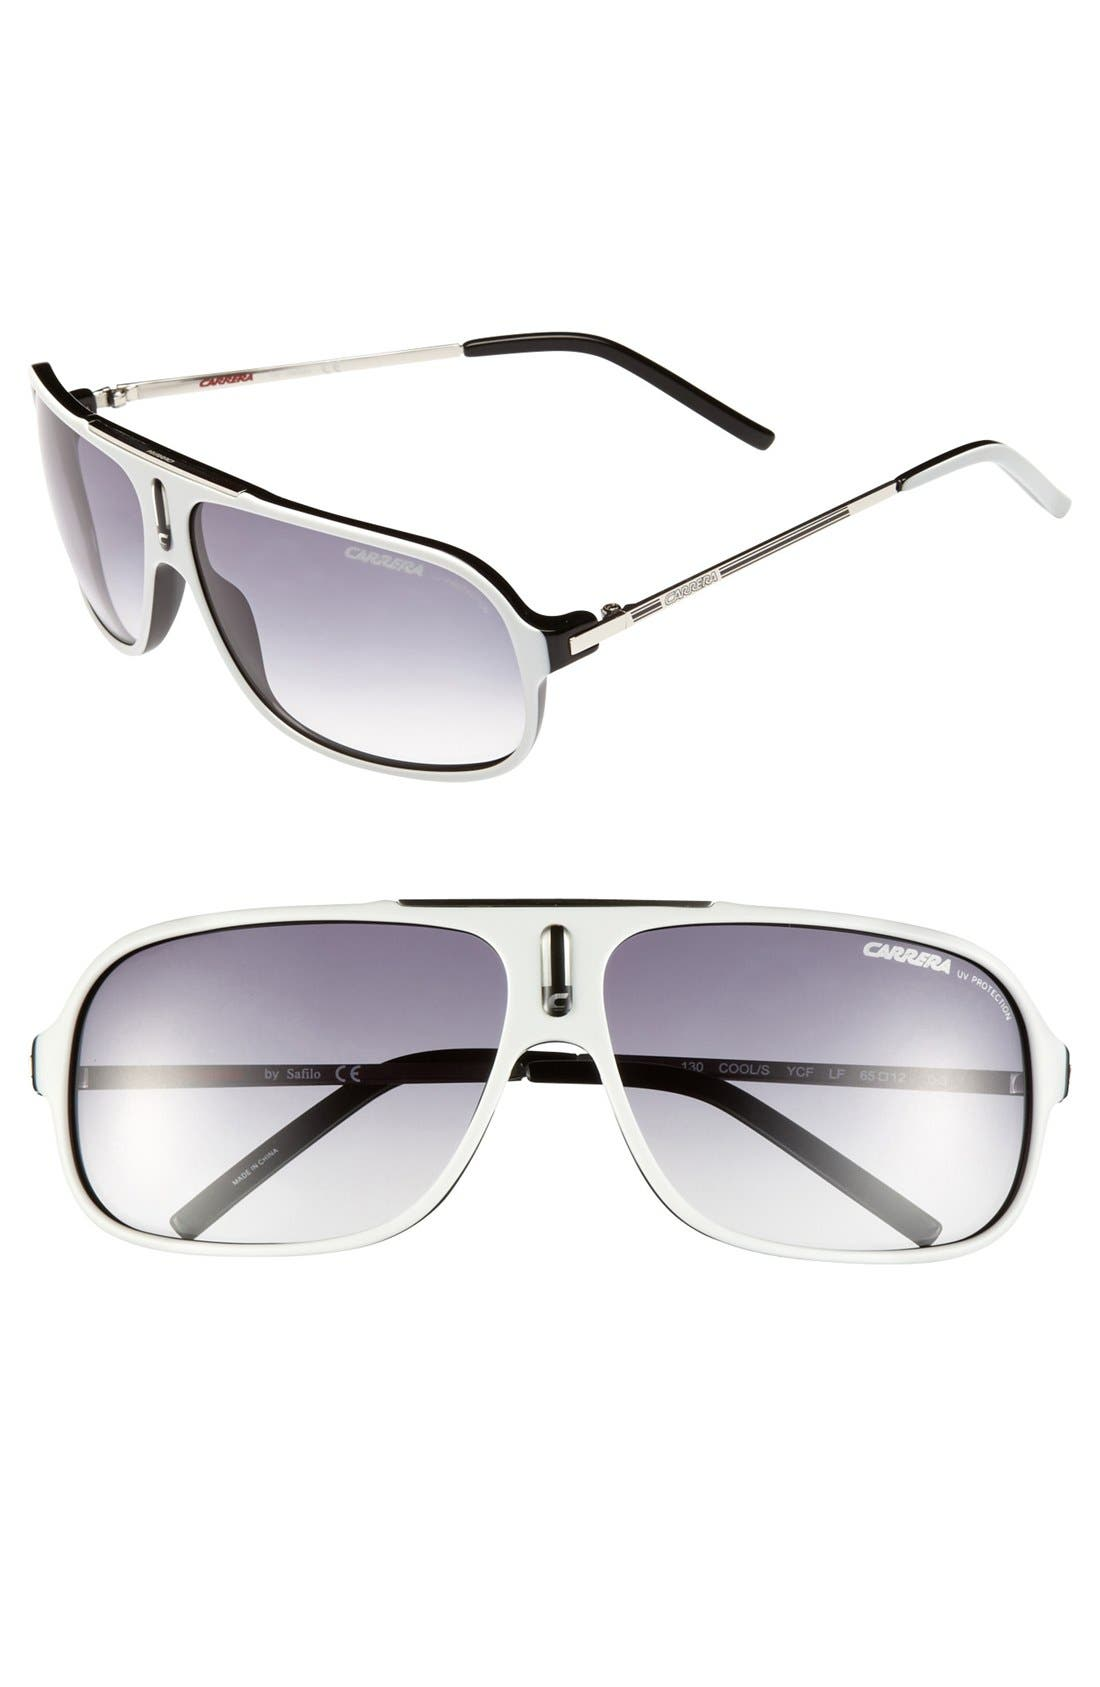 Alternate Image 1 Selected - Carrera Eyewear 'Cool' 61mm Vintage Inspired Aviator Sunglasses